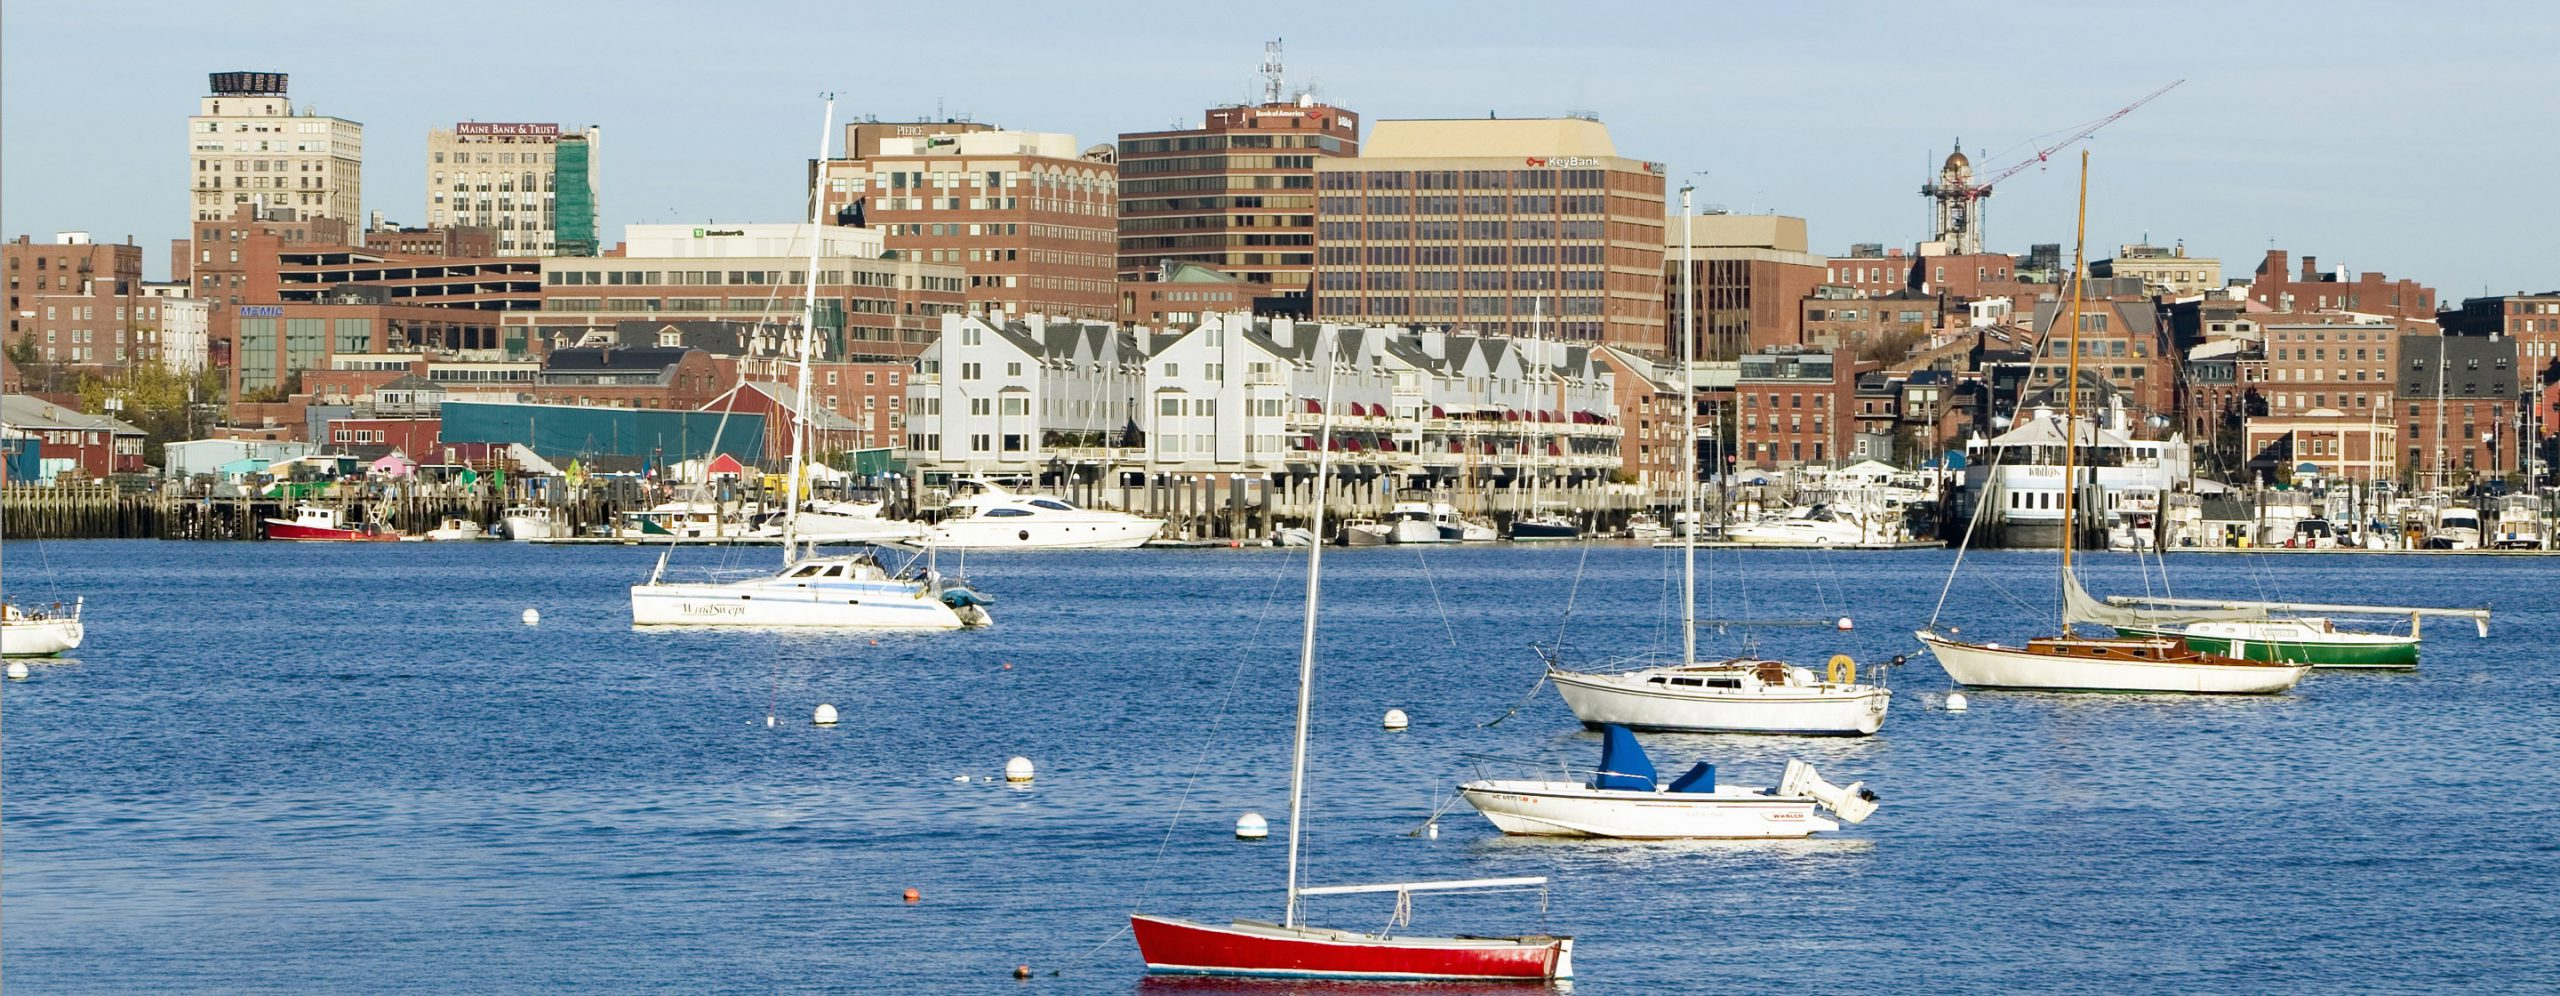 Carlin & Shapiro is a Premier Elder Law and Estate Planning Firm in the State of Maine